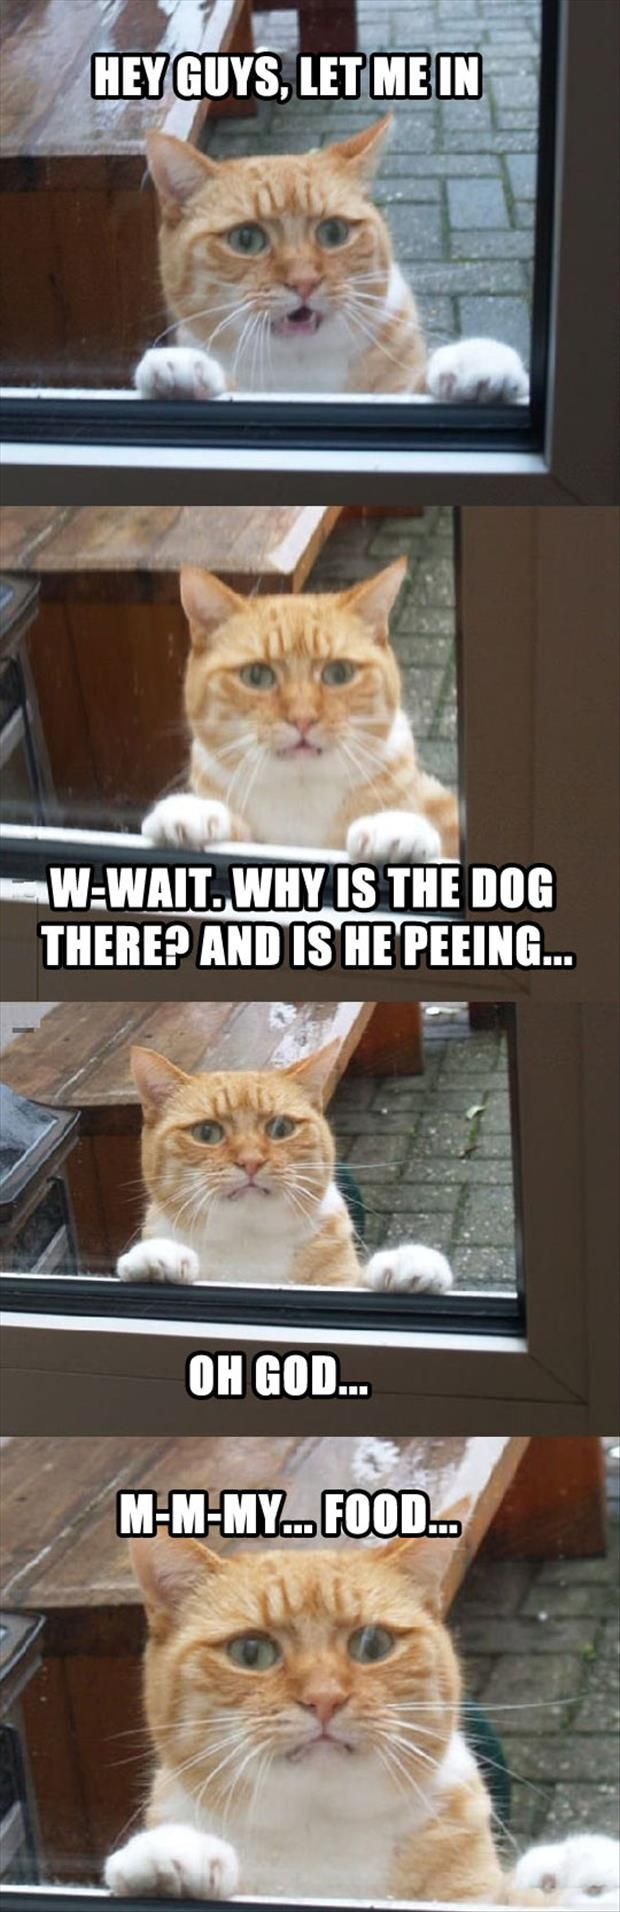 Dump A Day Attack Of The Funny Animal Pictures - 40 Pics